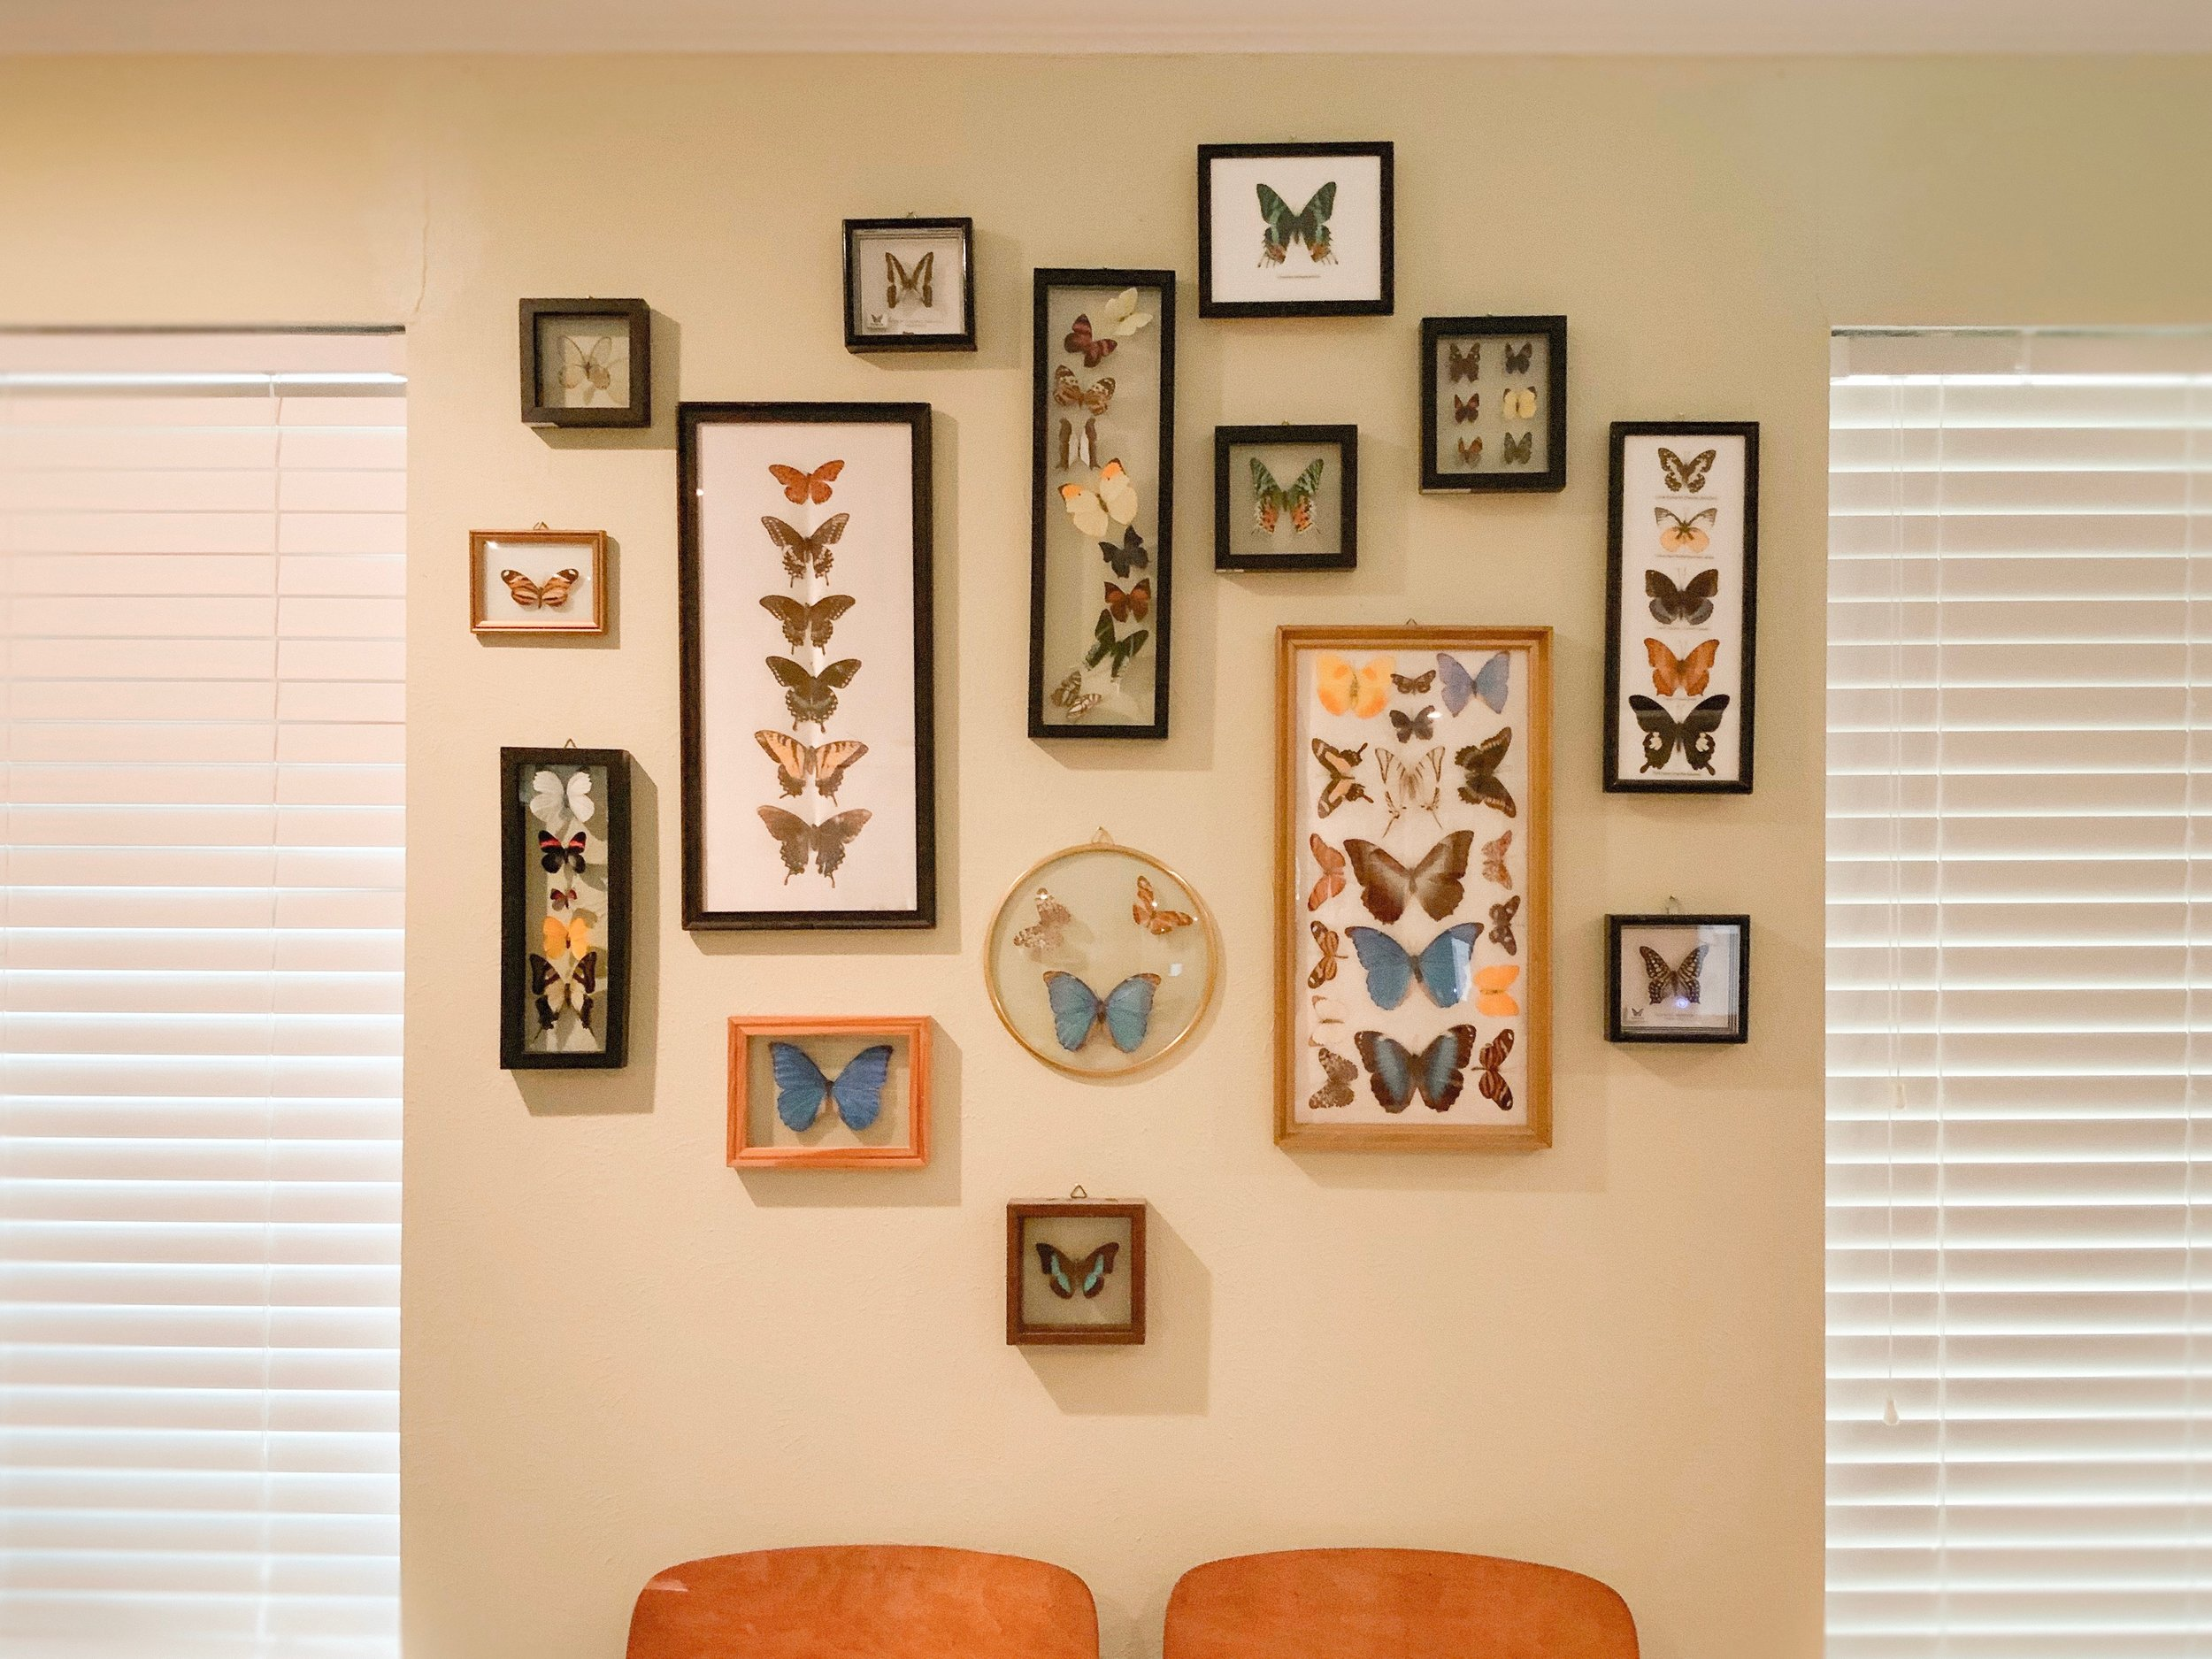 The butterfly wall in my front room.